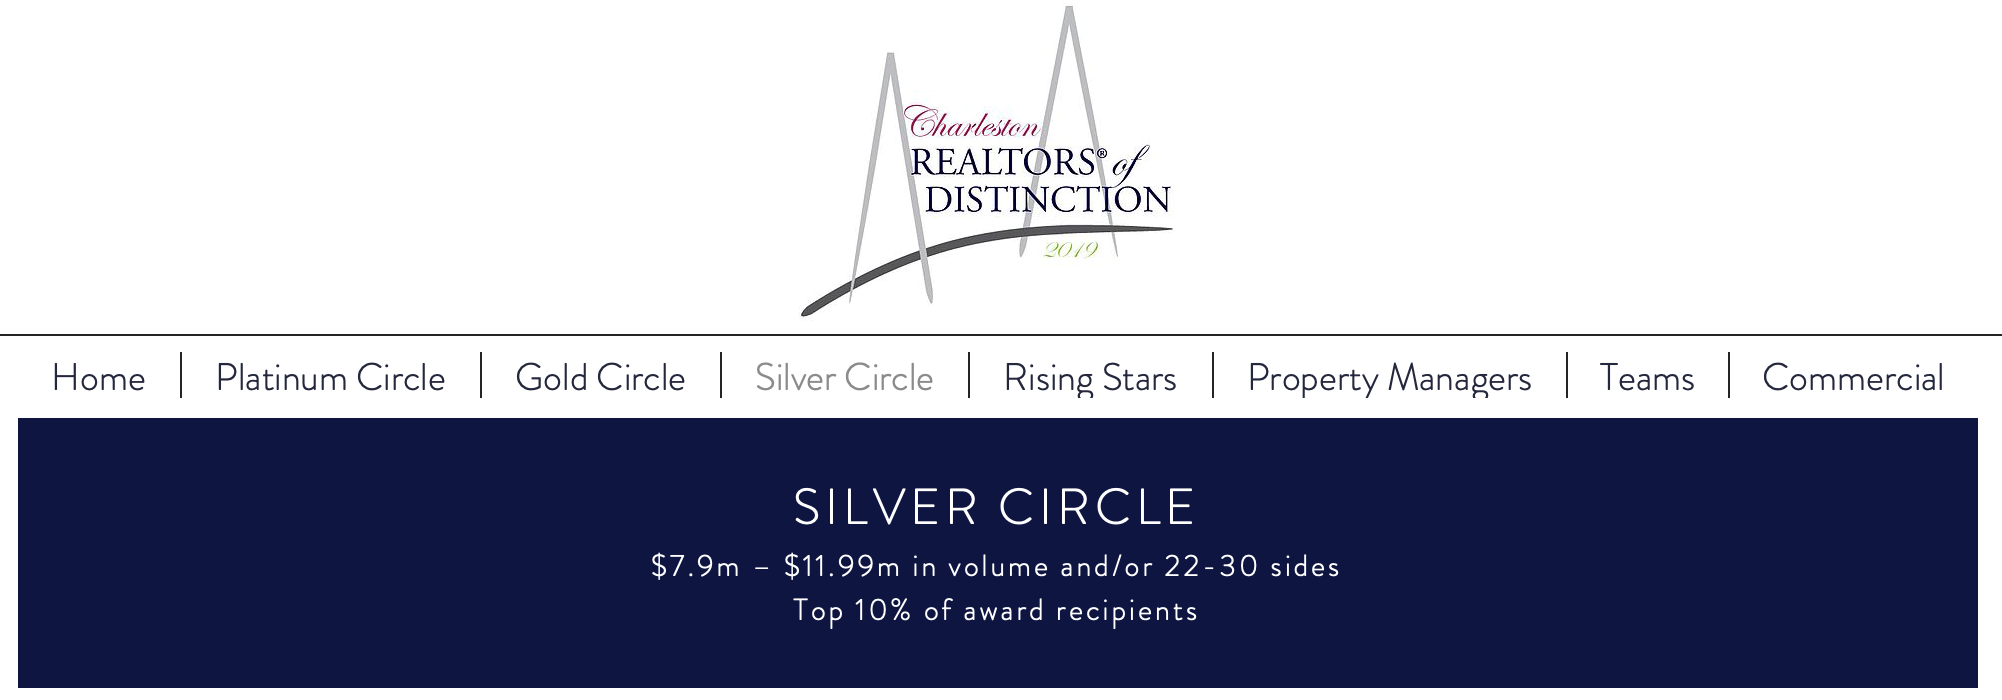 Charleston Tri-County Realtor of the Distinction